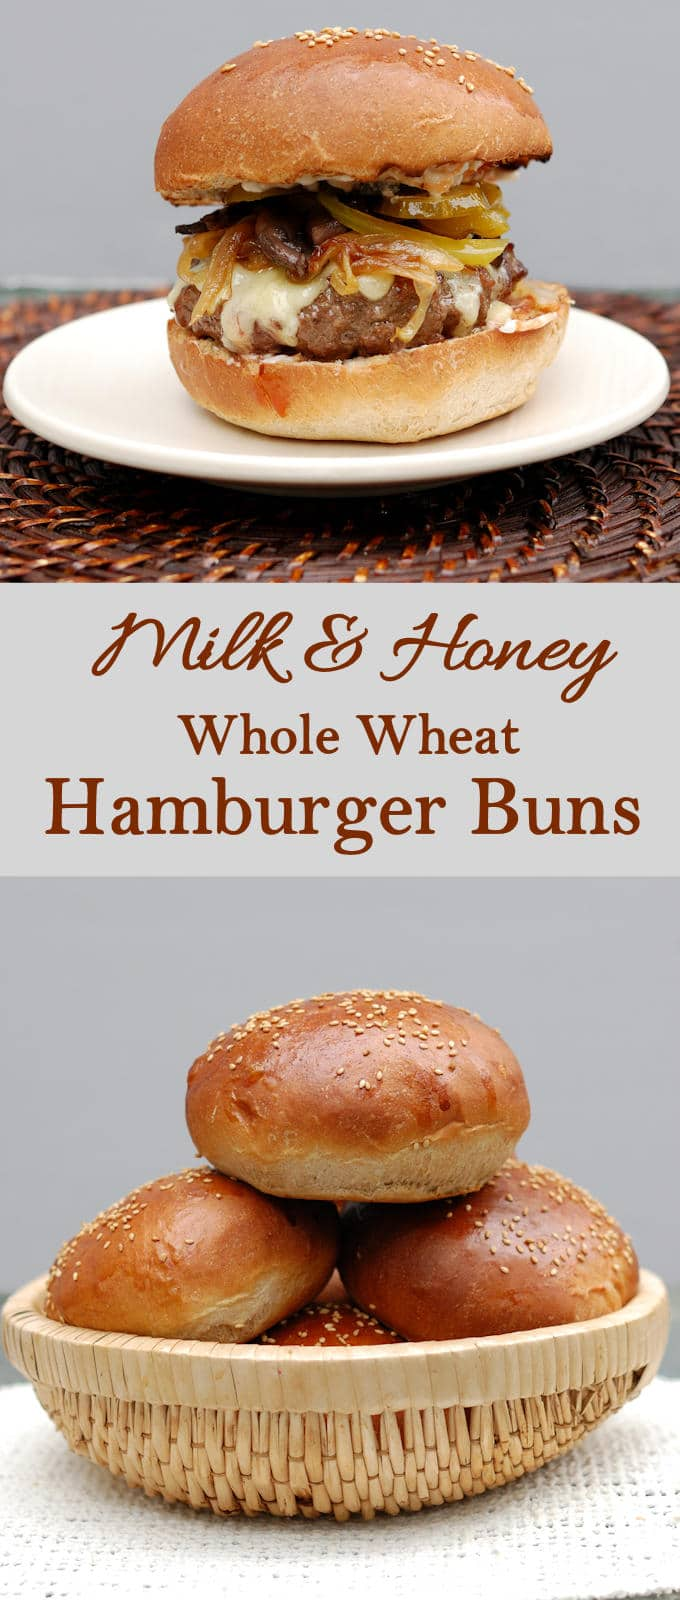 Super soft with a hint of honey sweetness - Milk & Honey Whole Wheat Hamburger Buns are a variation of my most popular bread recipe.